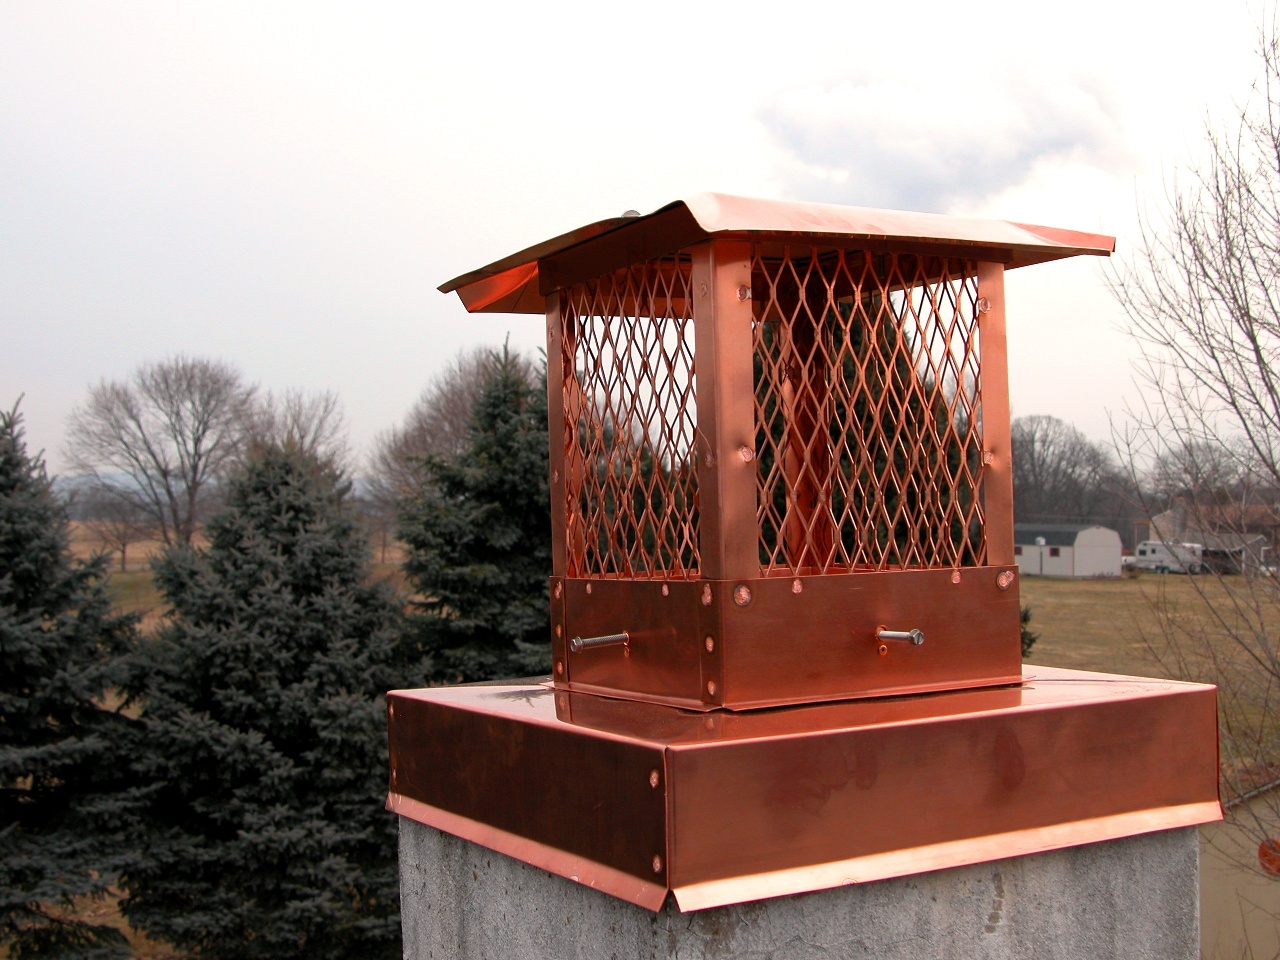 chase toppers llc our quality is on top custom copper chimney